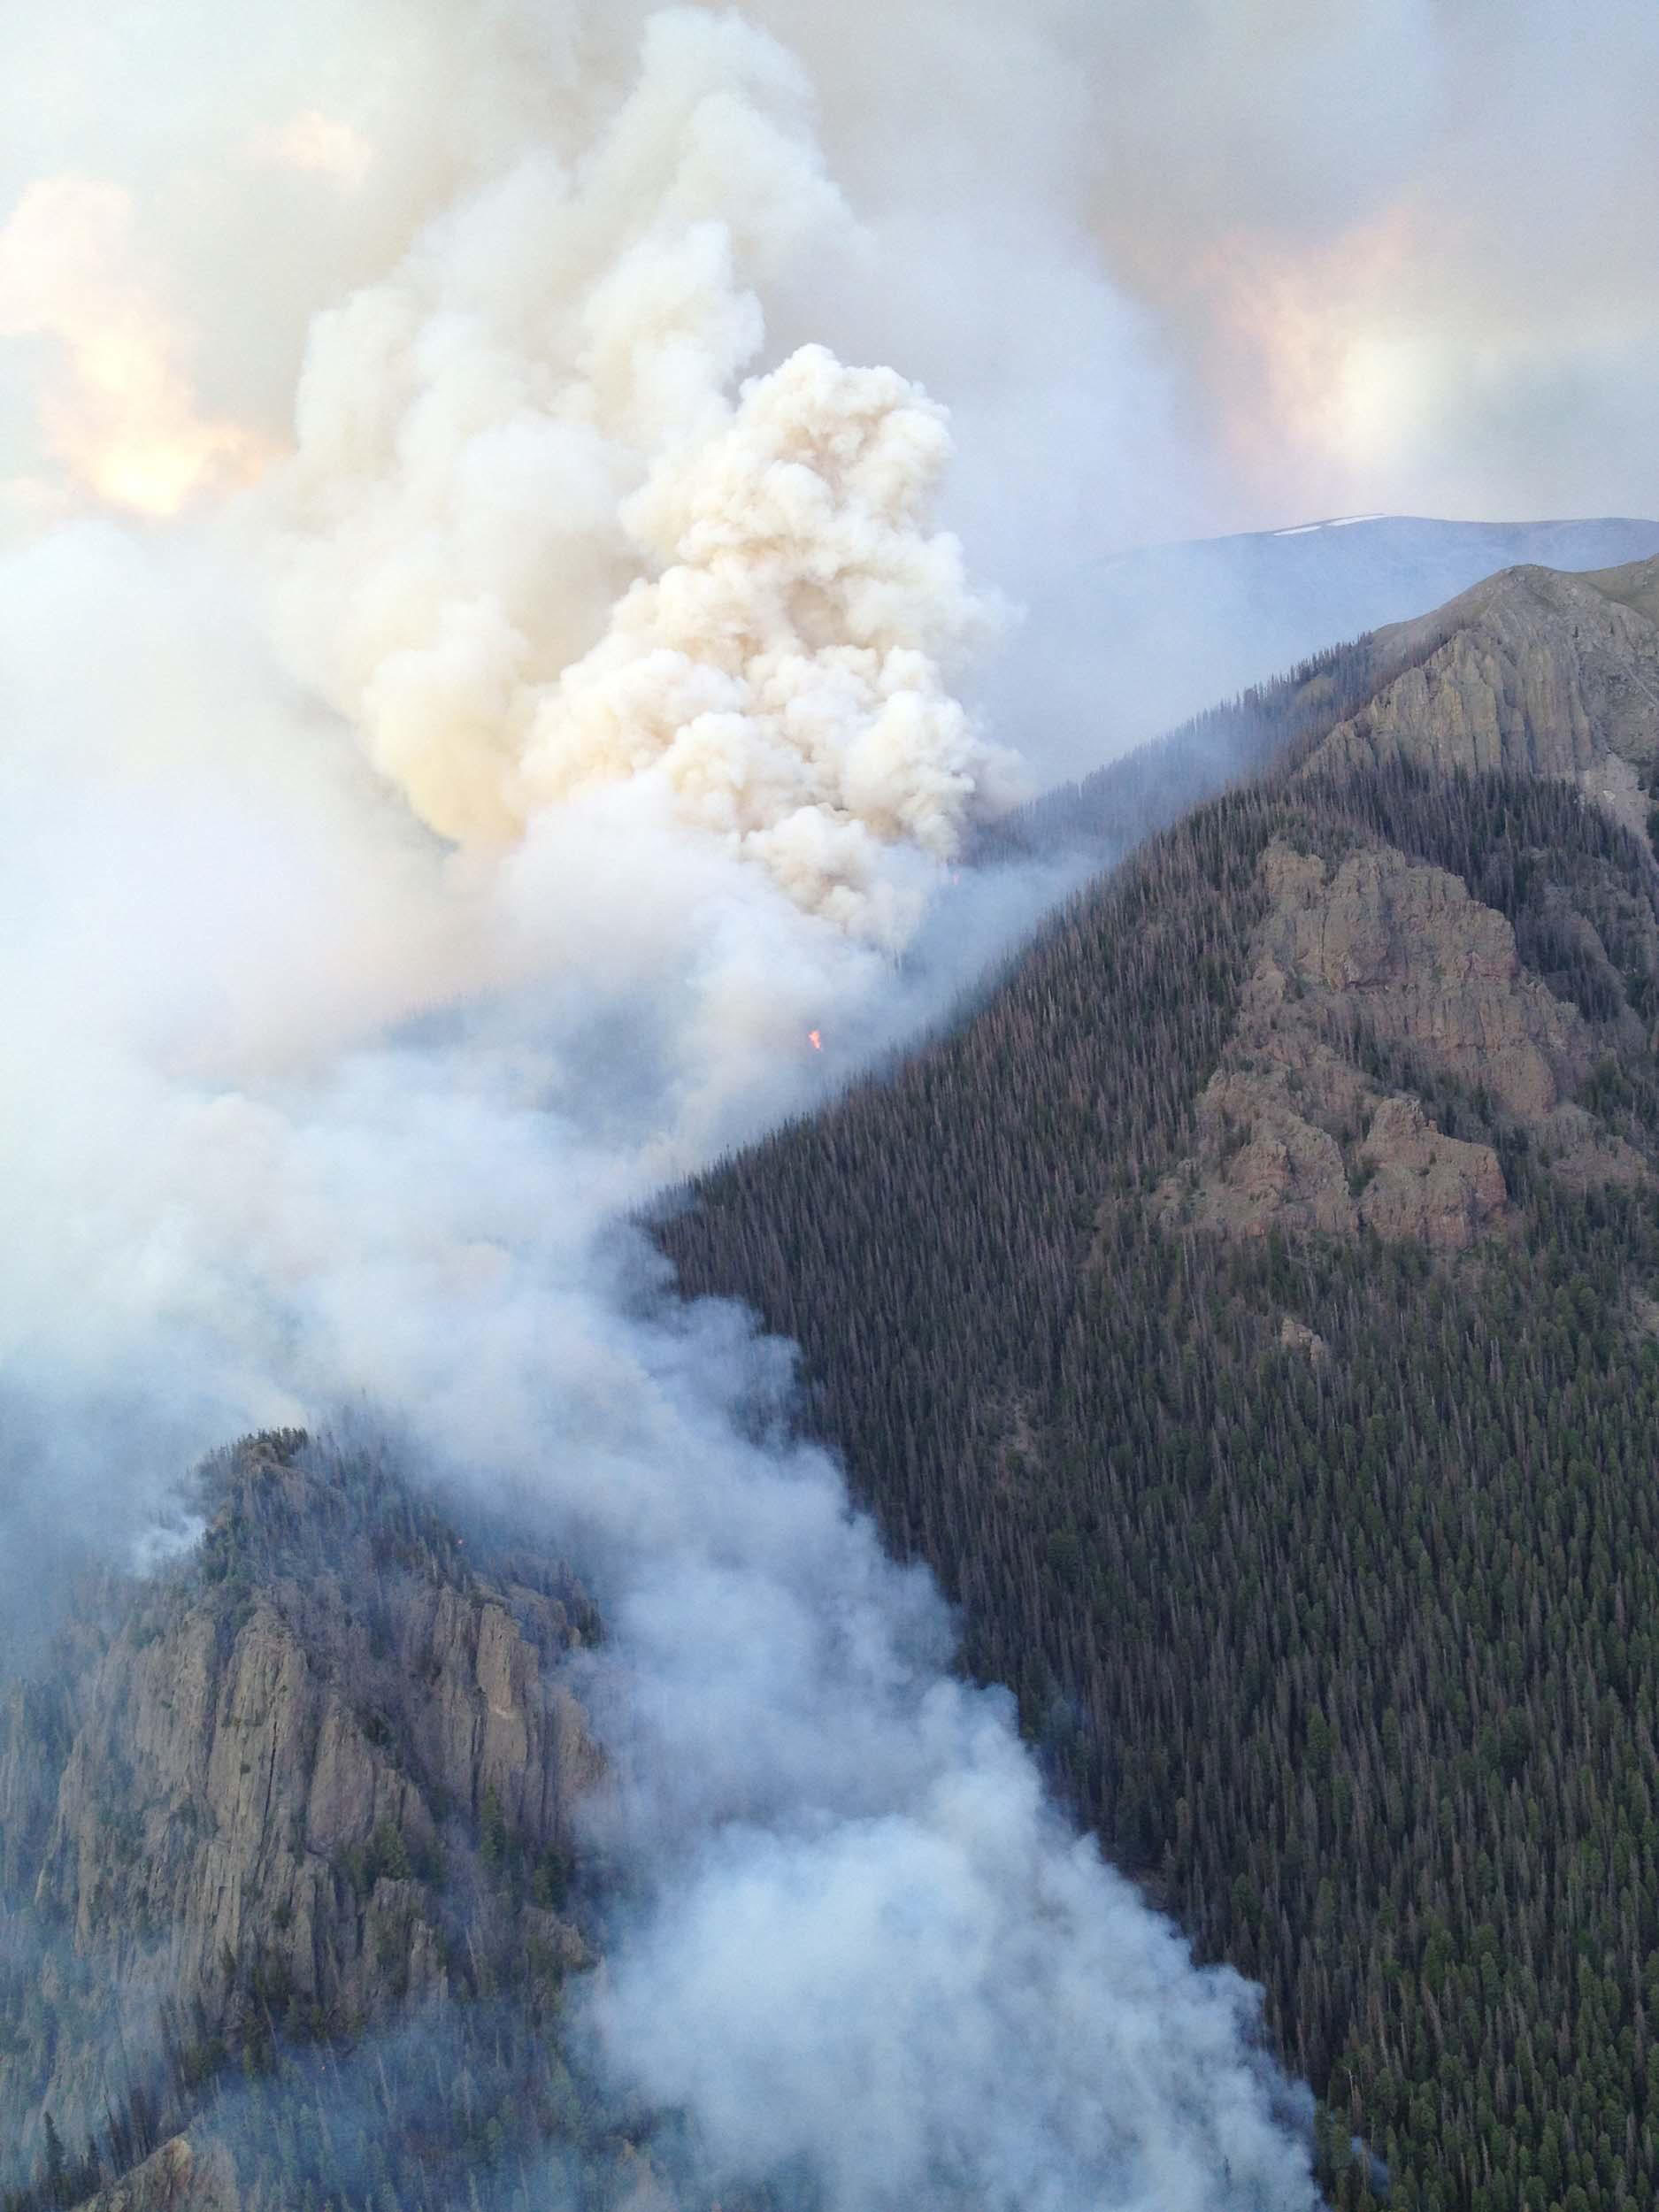 (credit: Pike Hotshots/U.S. Forest Service)